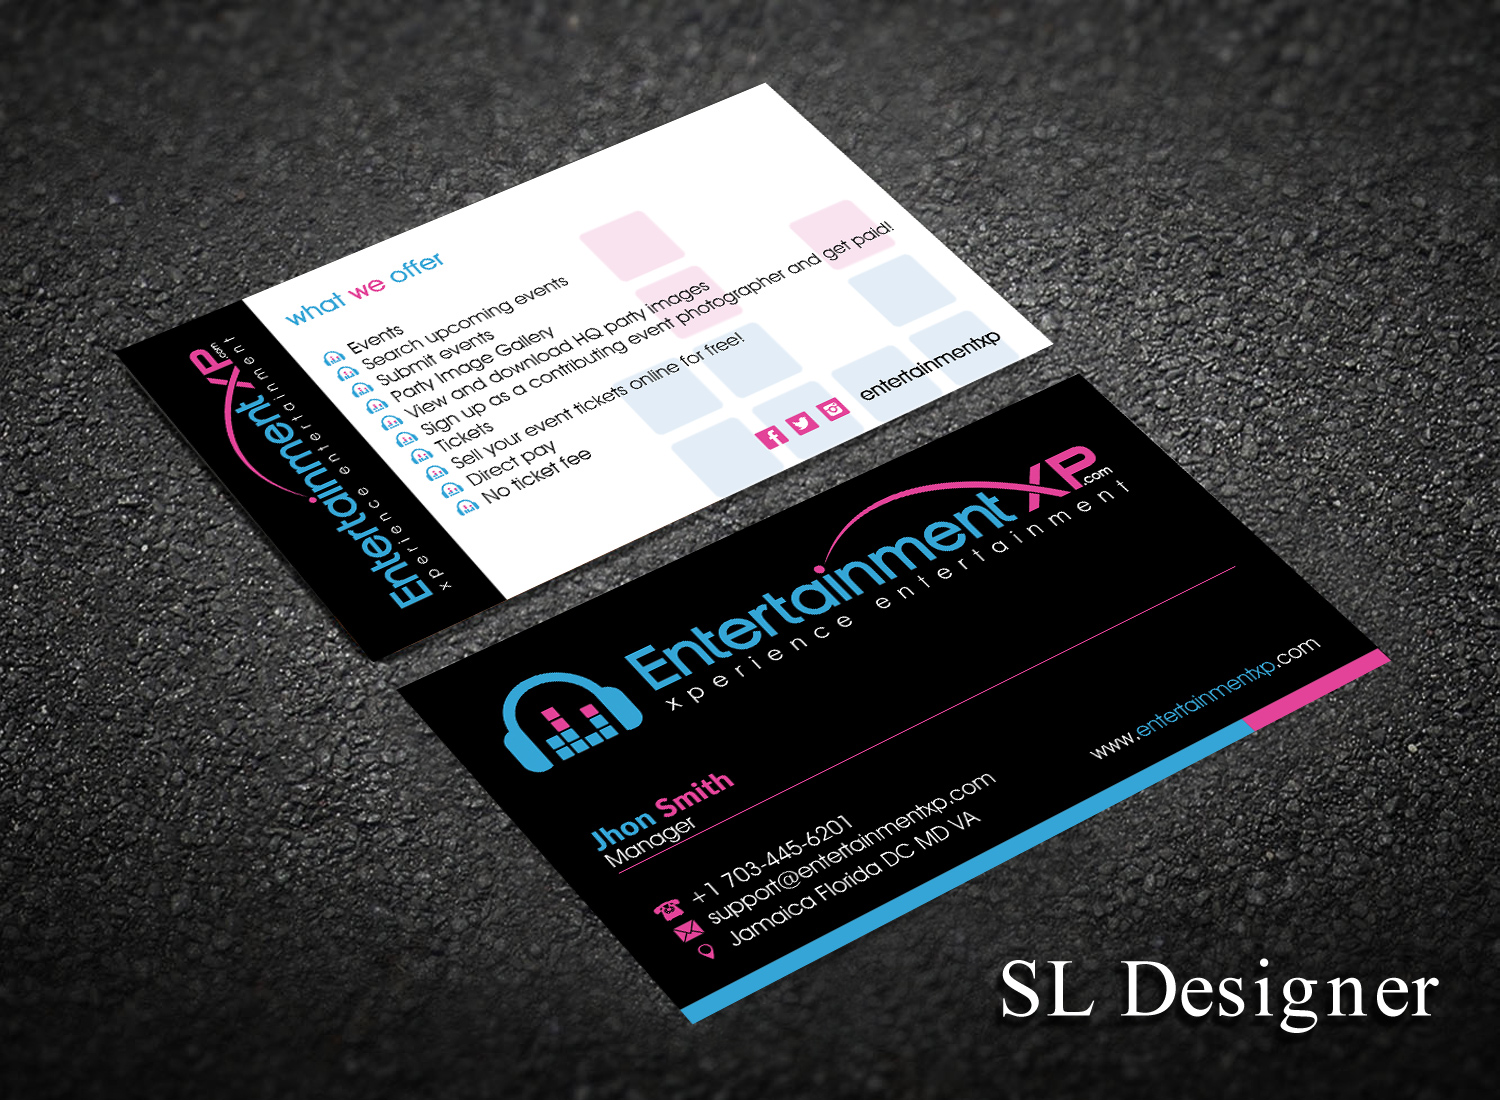 Masculine serious business business card design for business card design by sl designer for entertainmentxp design 13152922 reheart Image collections